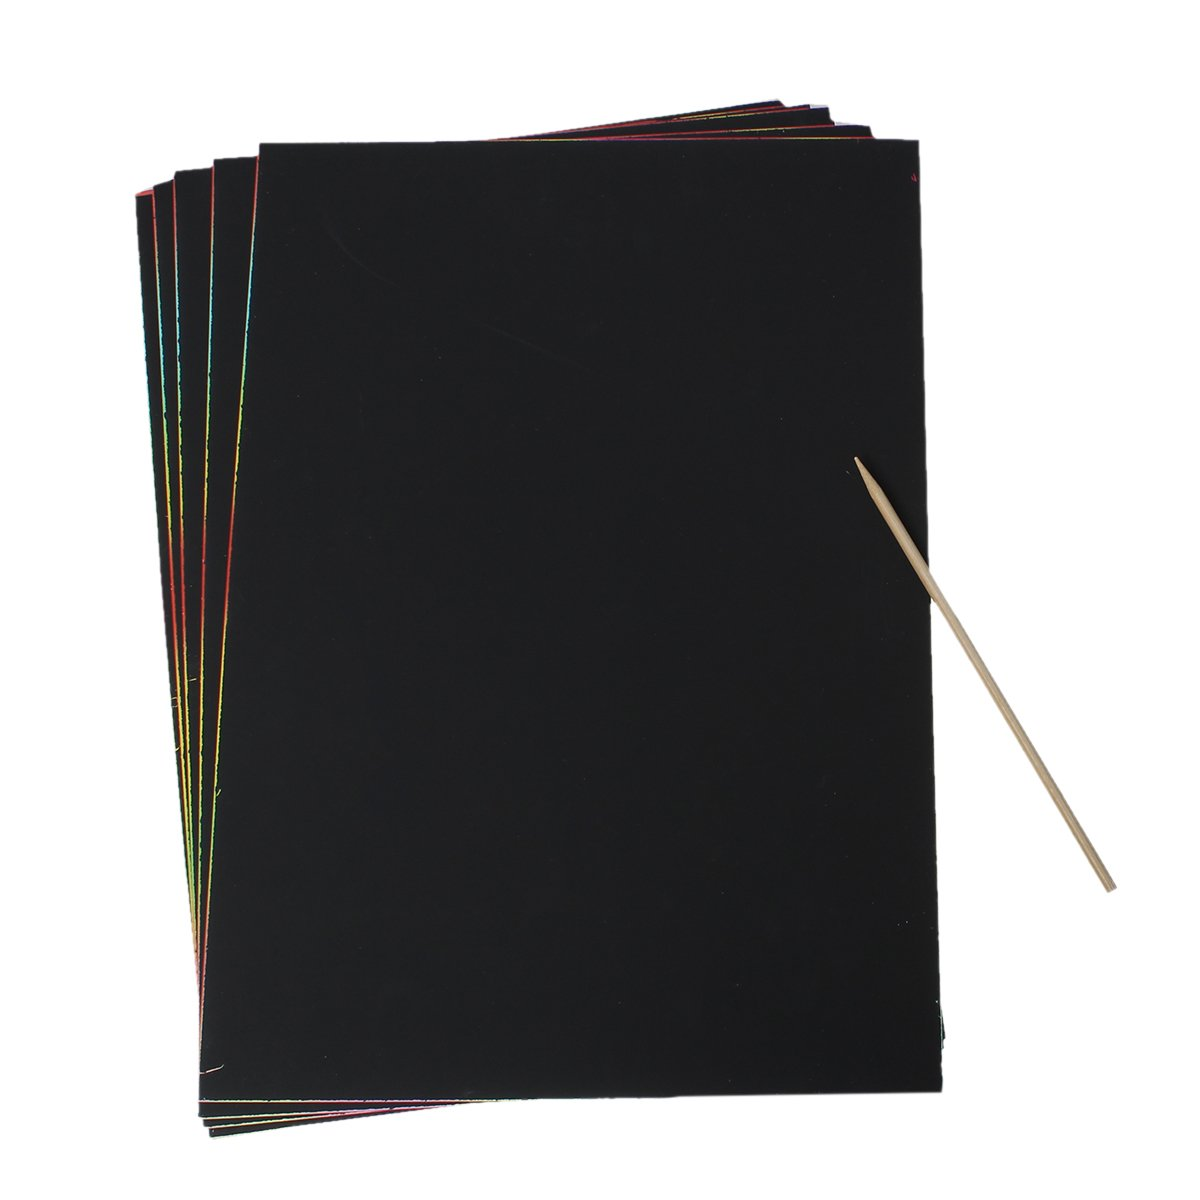 Souarts Black Magic Scratch Paper Art Painting Paper with Drawing Stick Pack of 5 Sheets Hellocrafts